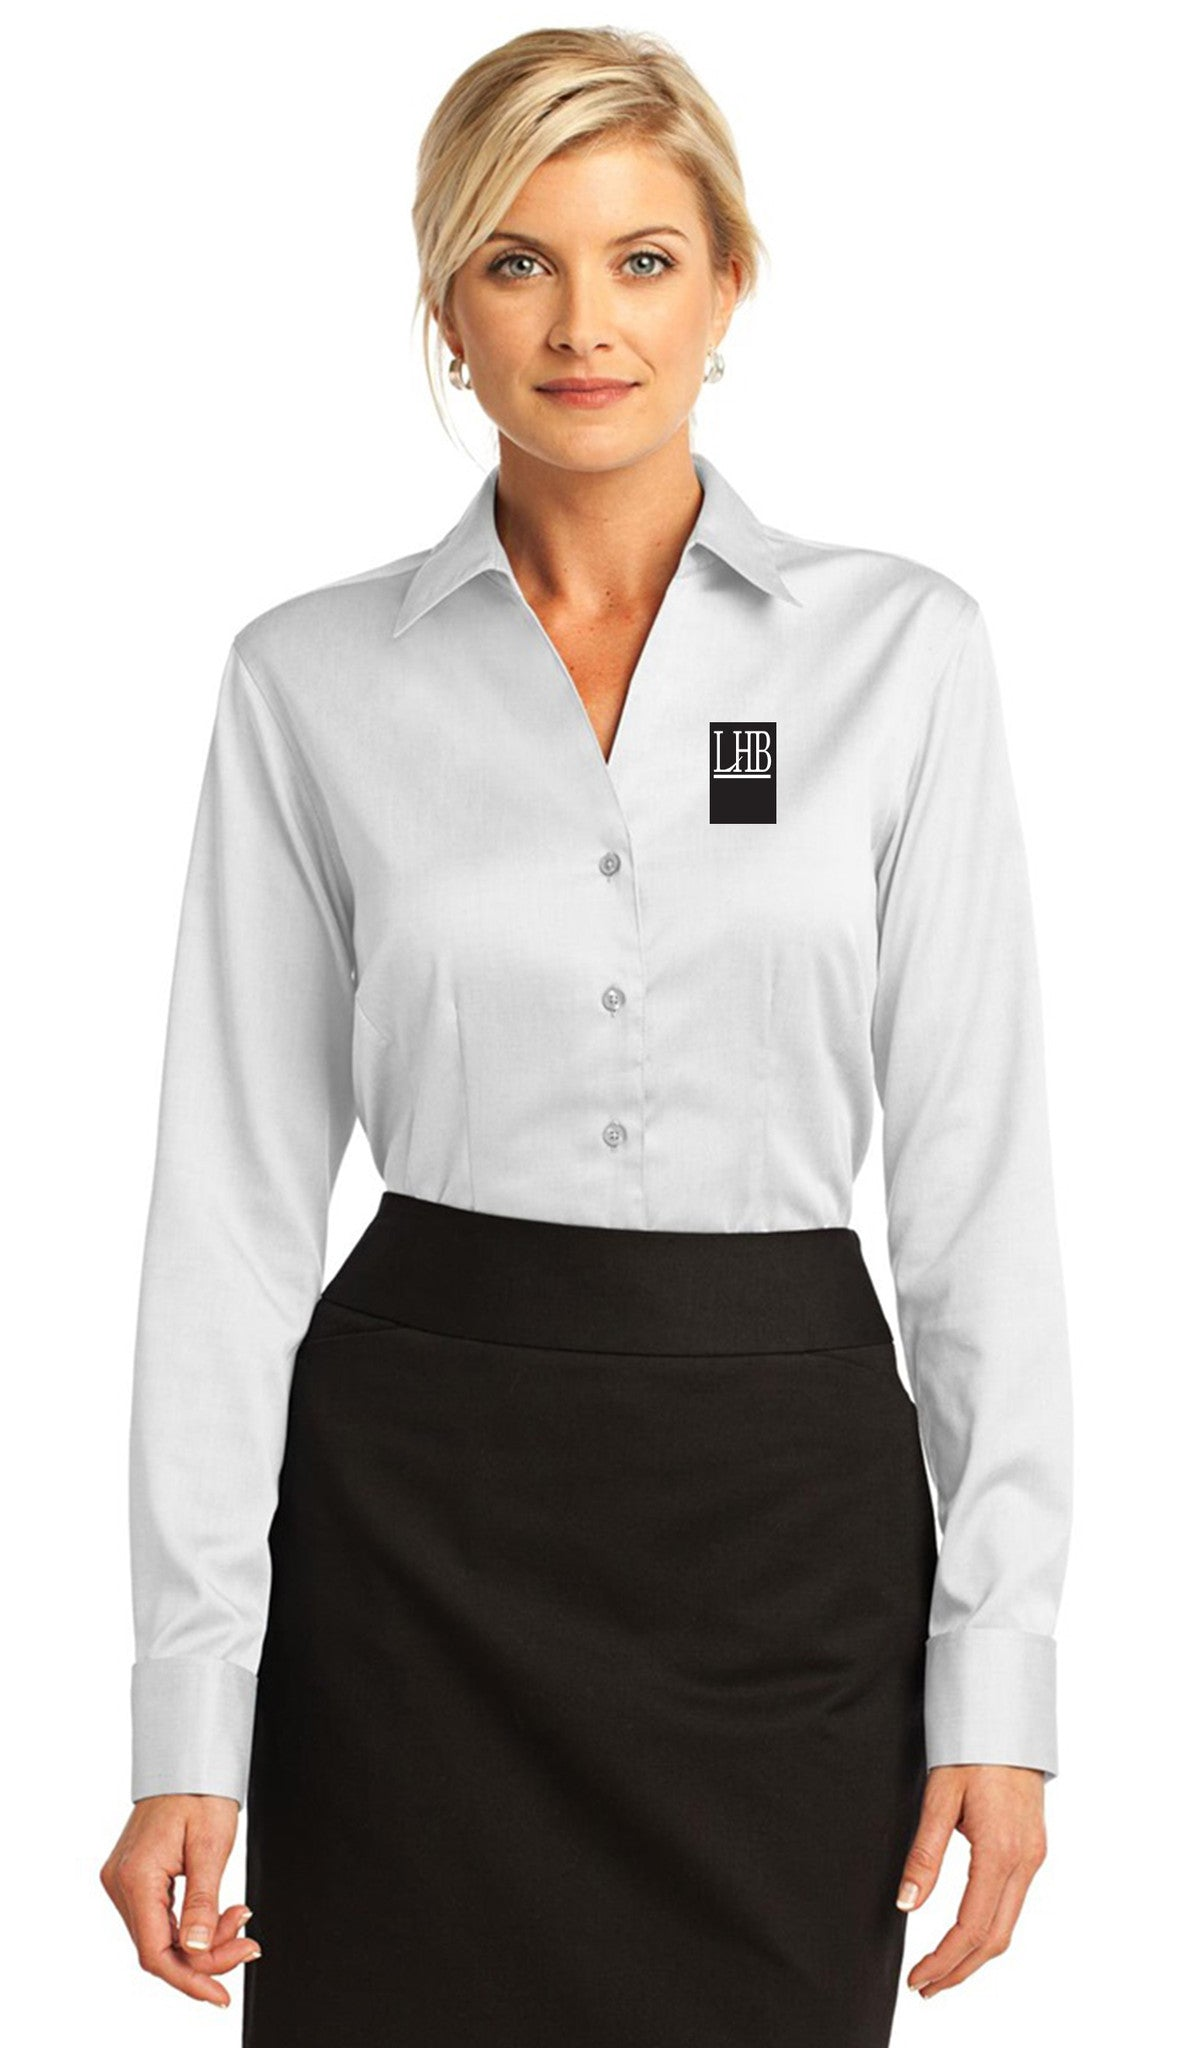 Red House® - French Cuff Non-Iron Pinpoint Oxford Shirt - Women's - #RH63